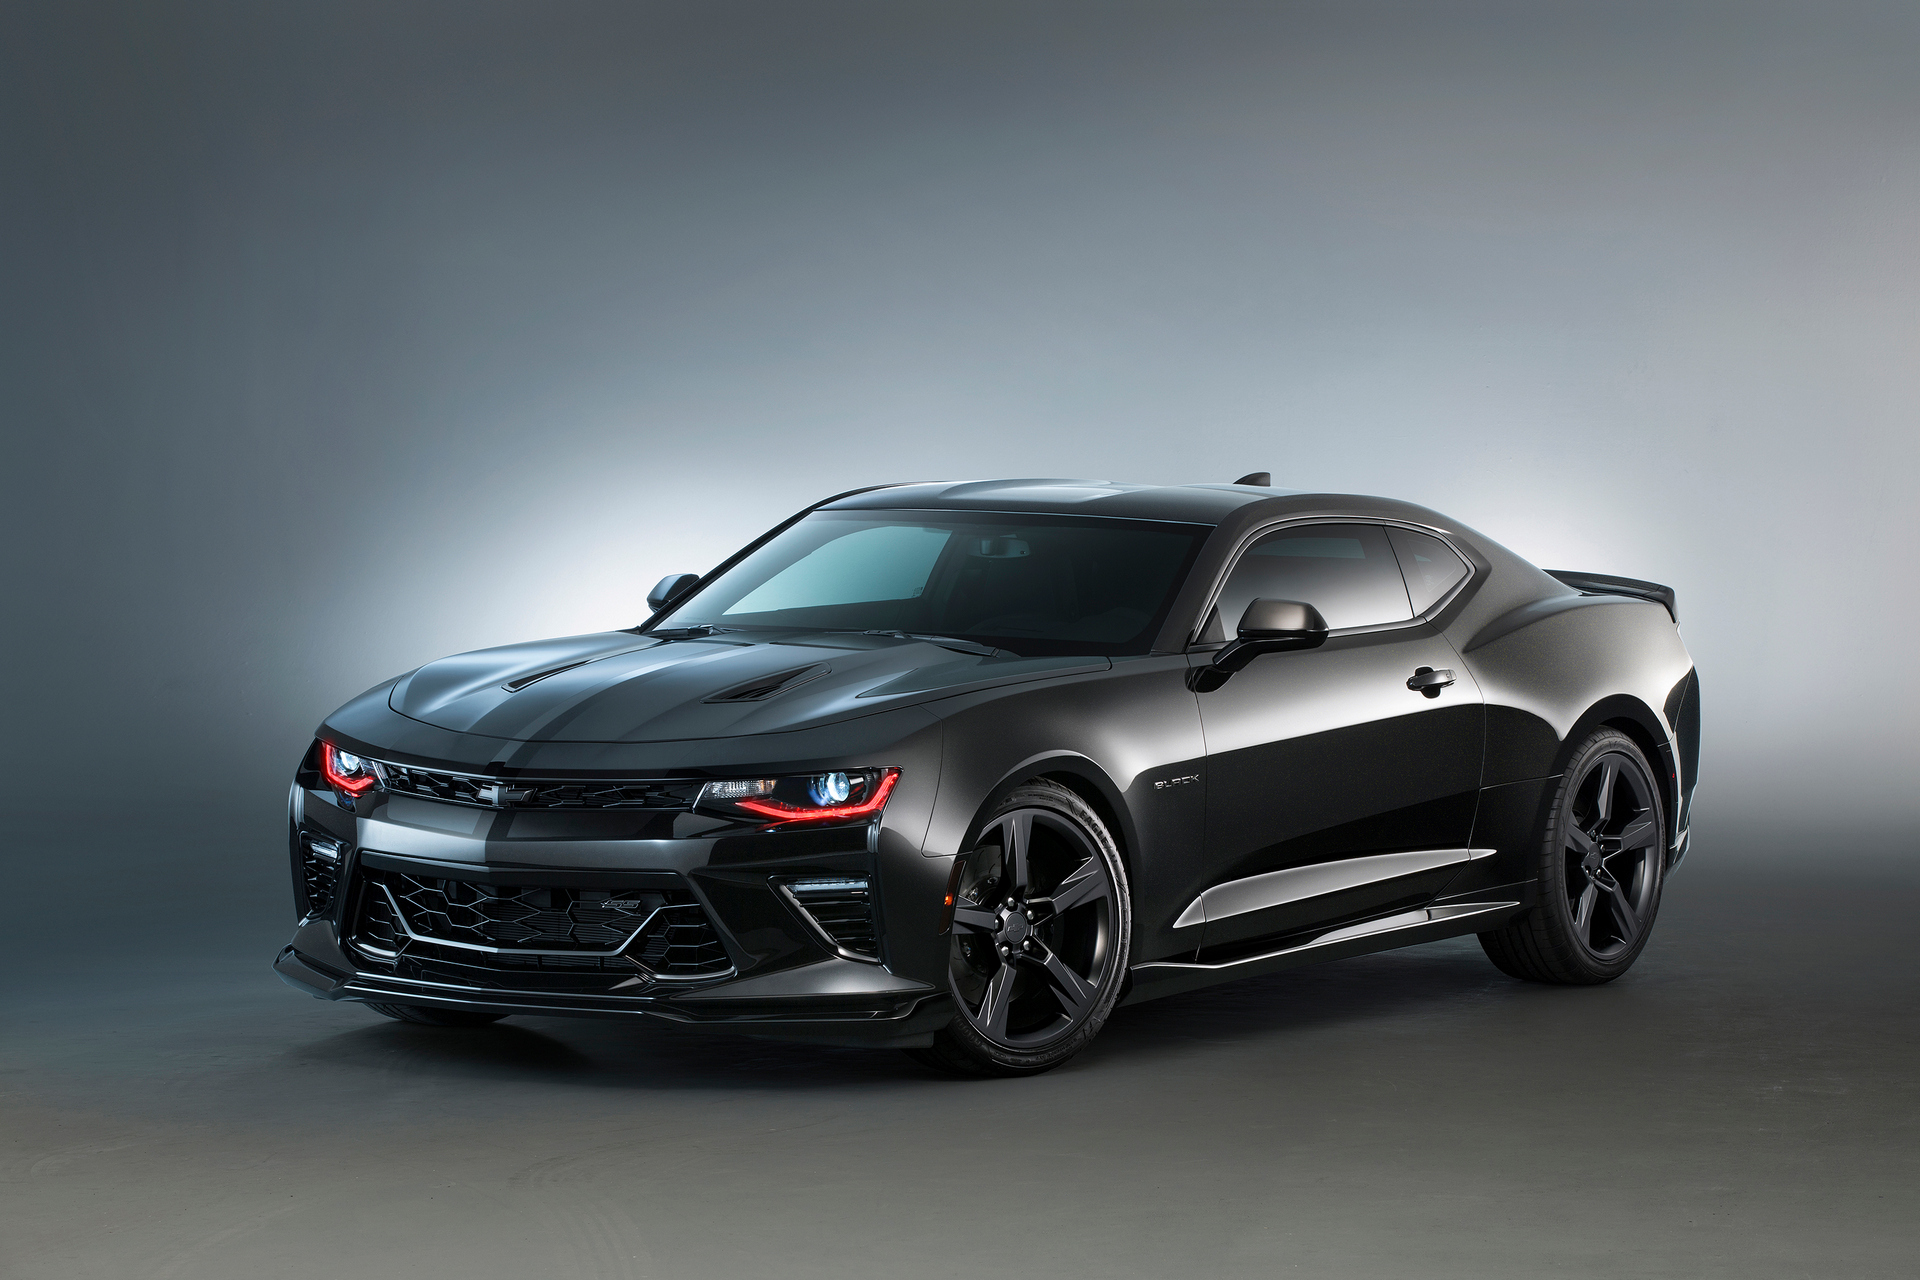 How Fast Does a Camaro Go? - Carrrs Auto Portal